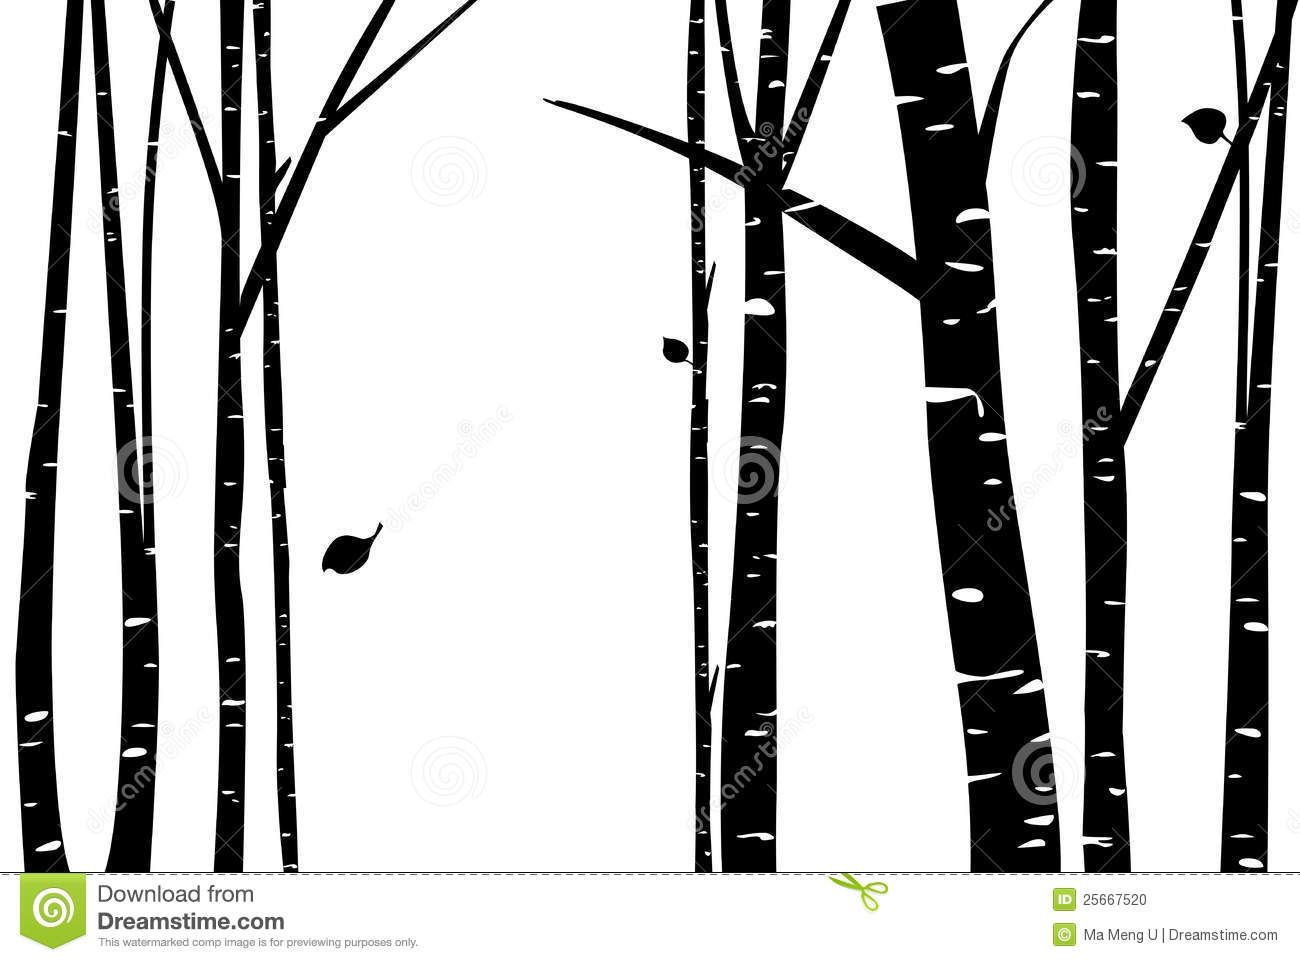 Birch tree silhouette clipart clipart library library Birch Tree vector | Birch grove with falling leaf silhouette. By Ma ... clipart library library